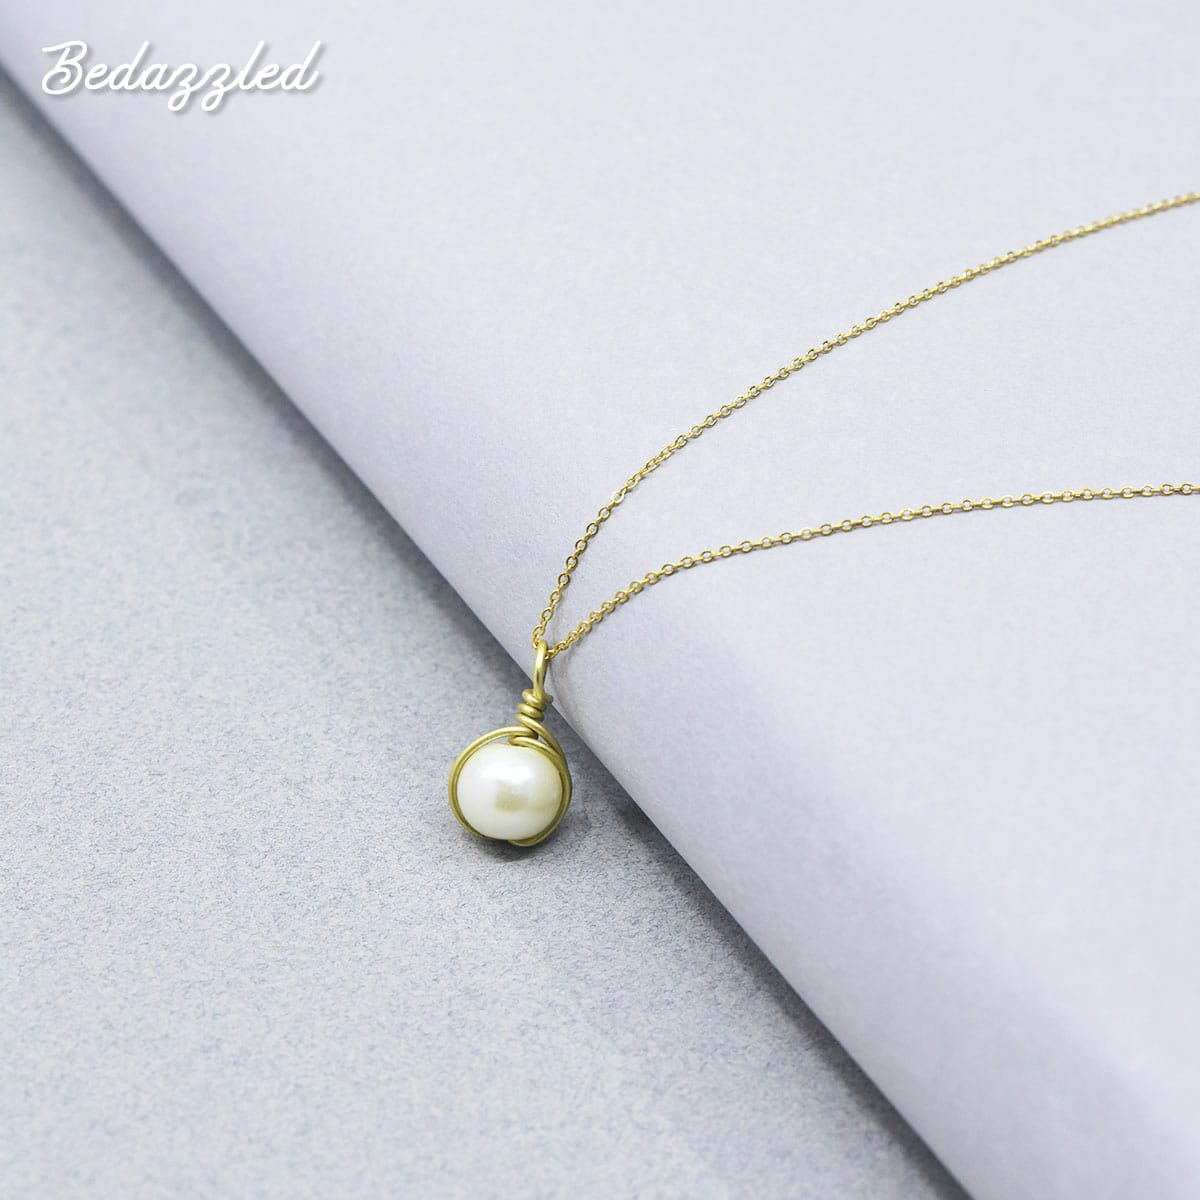 Bedazzling Pearl - Necklace